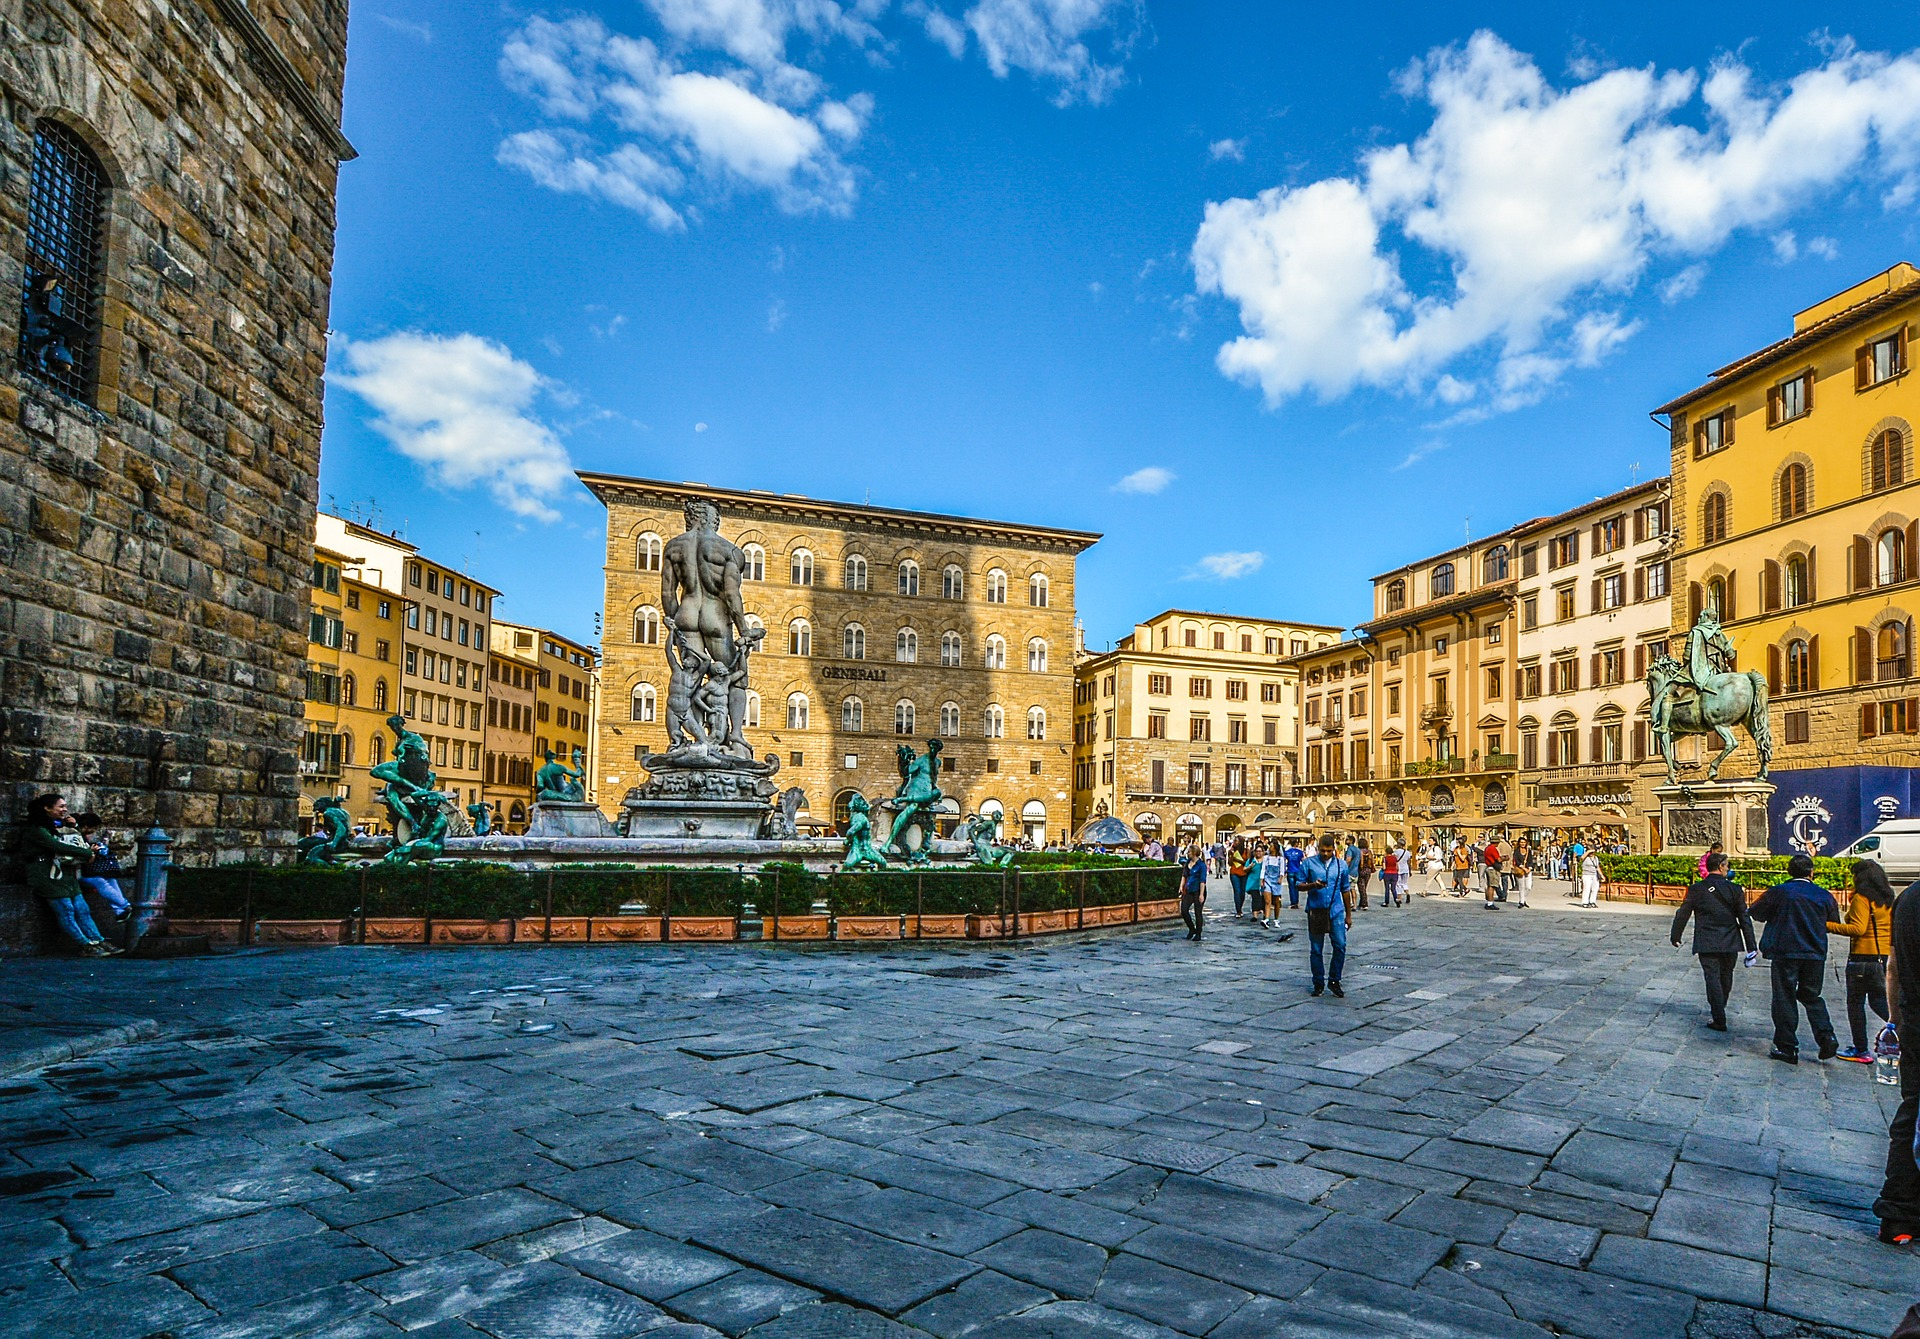 Square in Florence, Italy